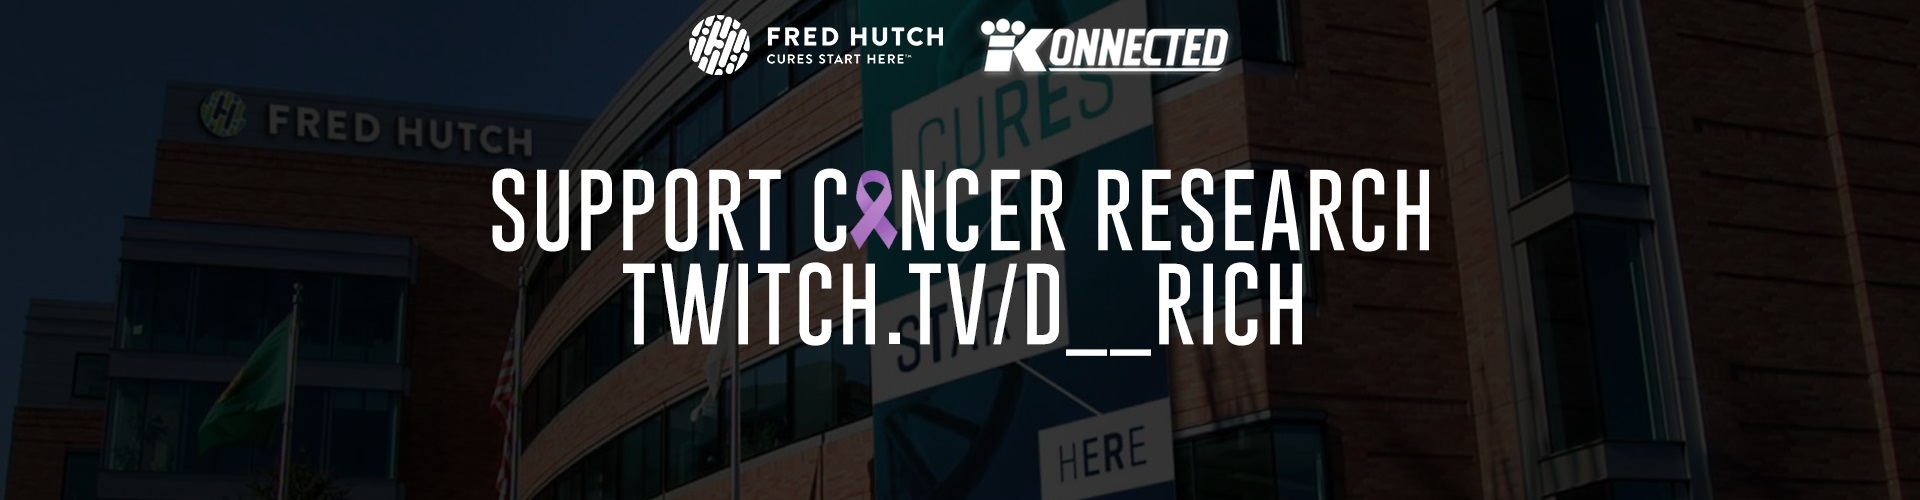 Fred Hutch and D_Rich Combine to Combat Cancer Research!!!